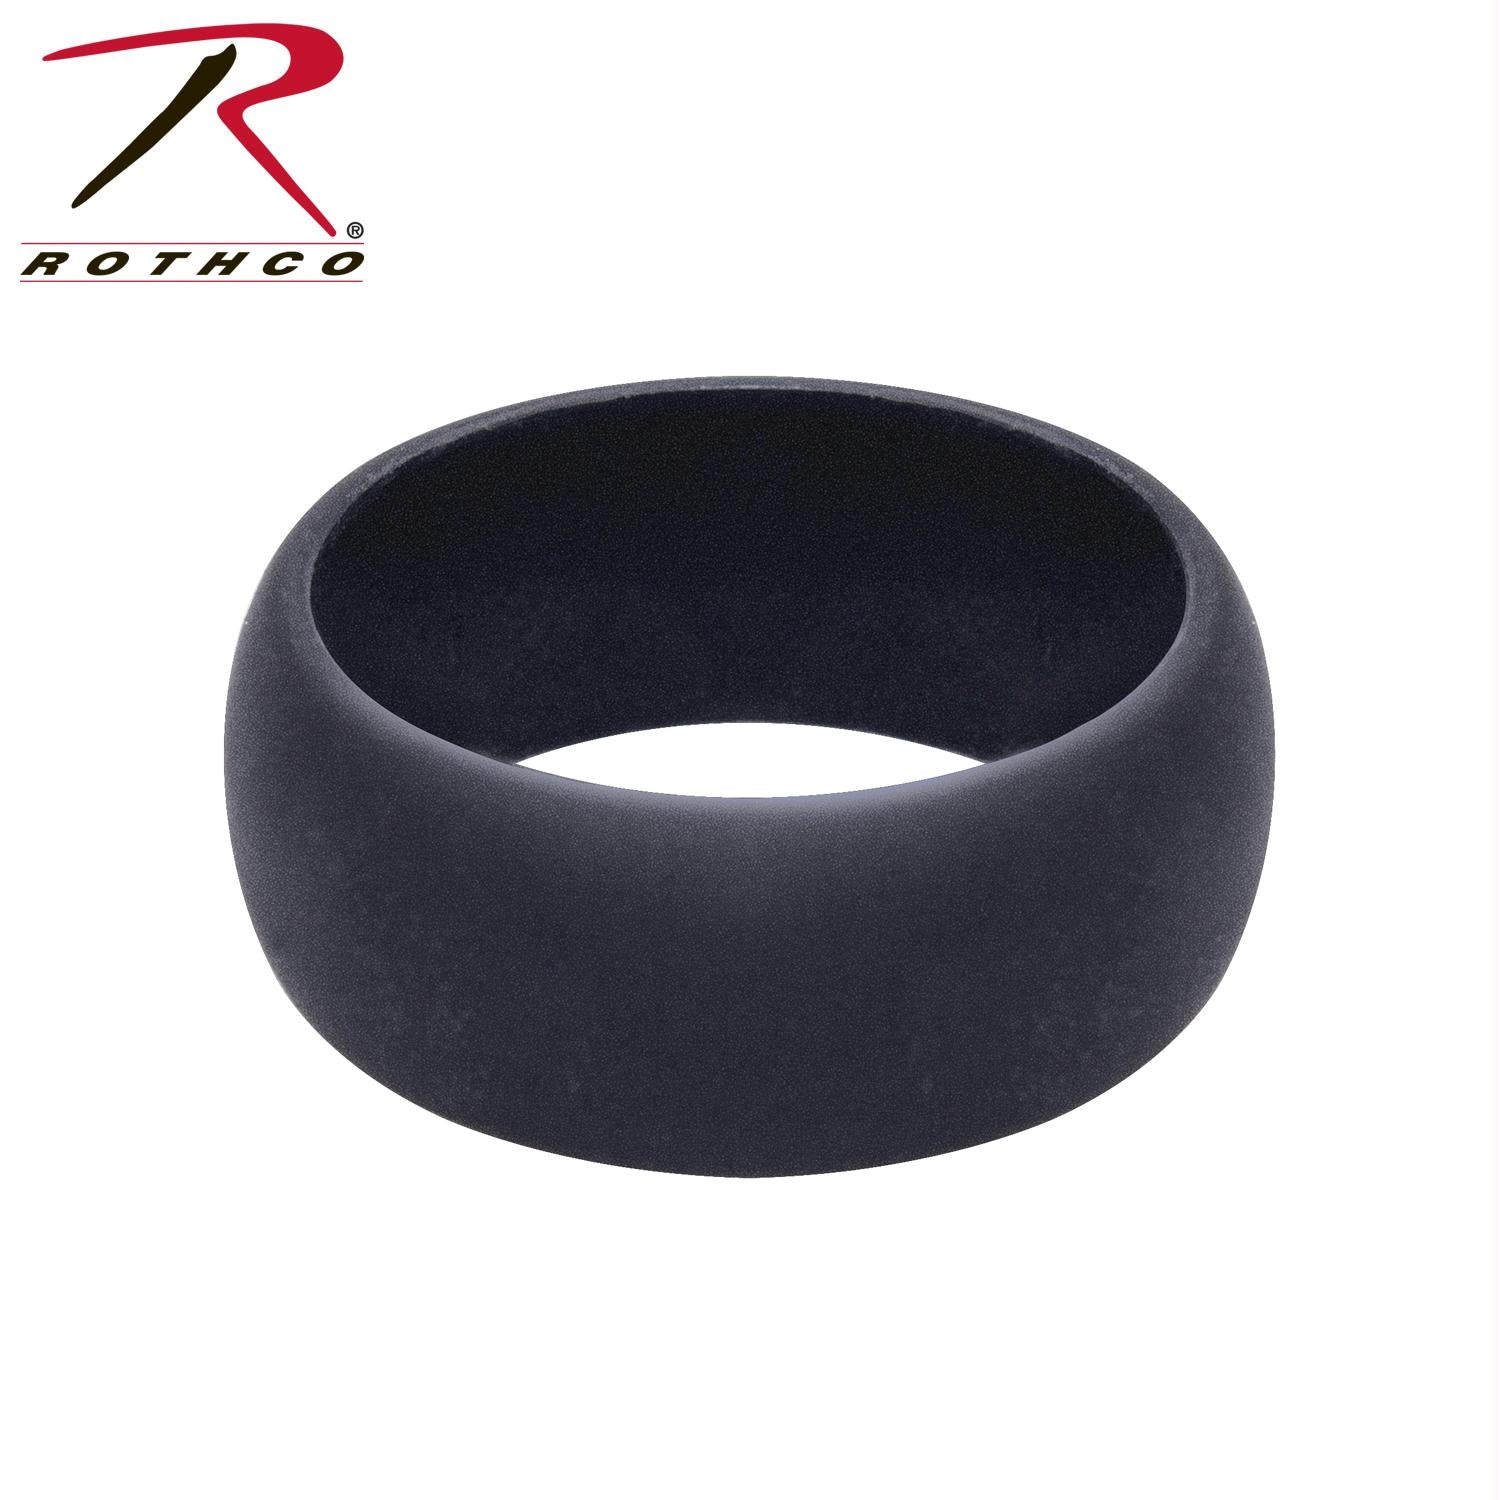 Rothco Silicone Ring - Ring Size 11 (2 9/16 inches)